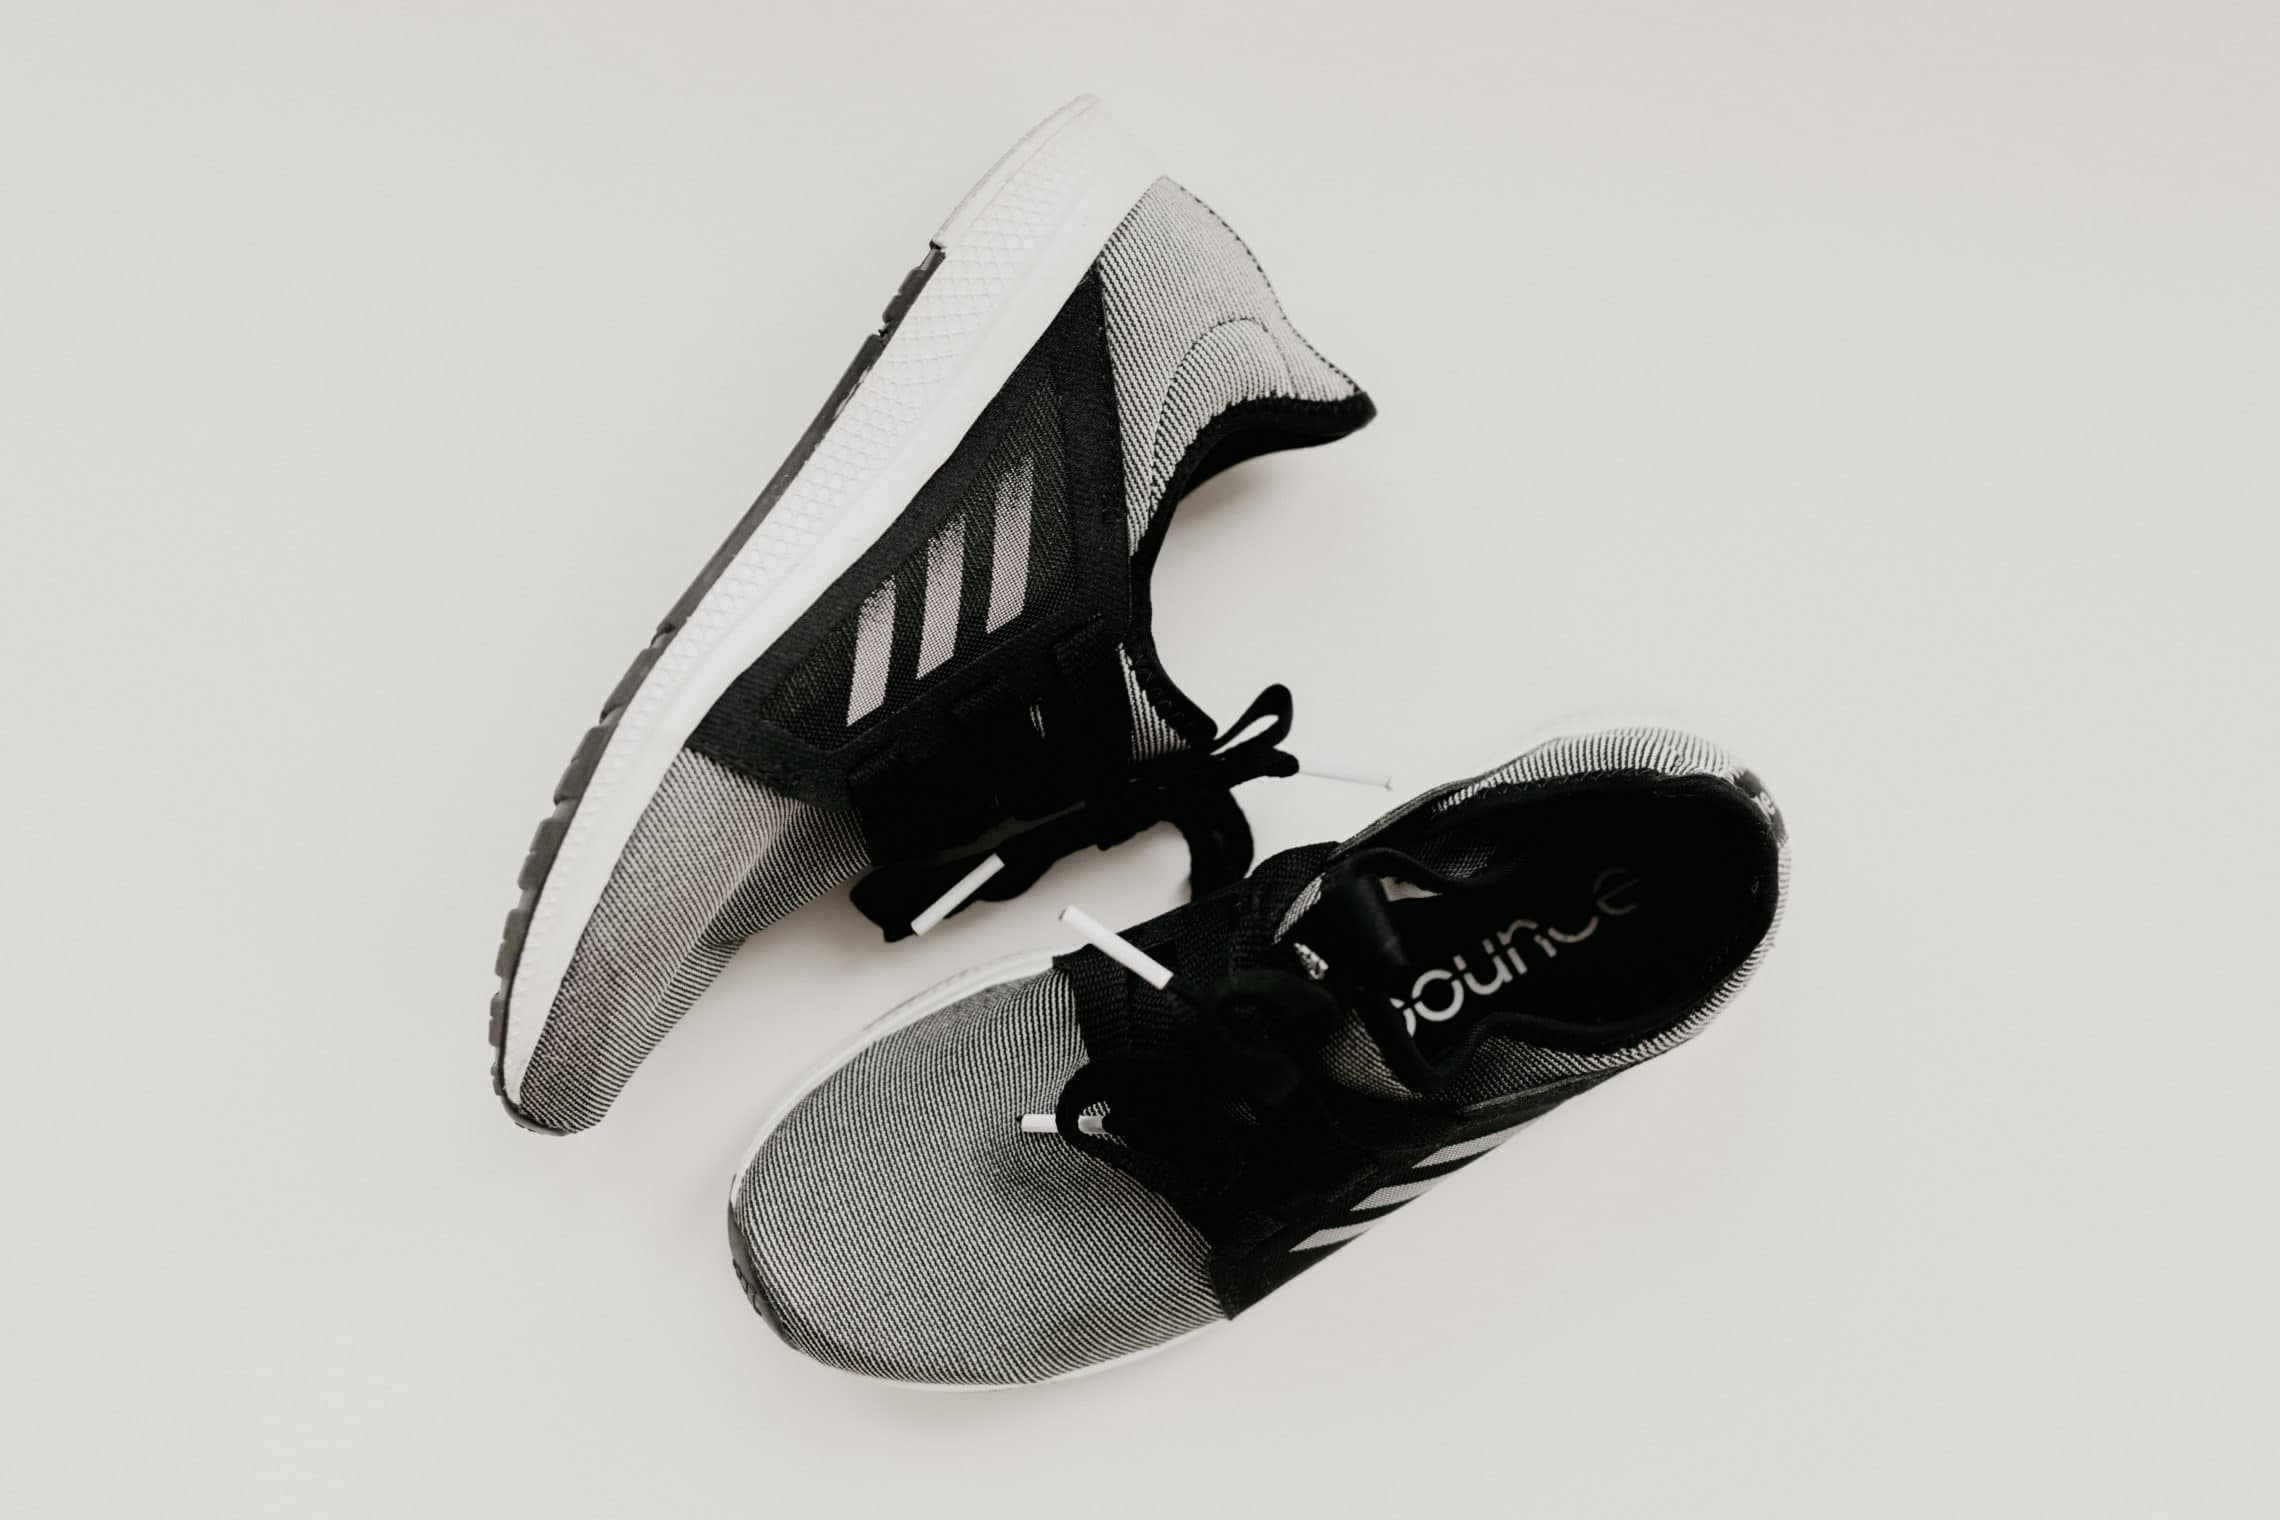 Adidas lux sneakers shoes running shoes